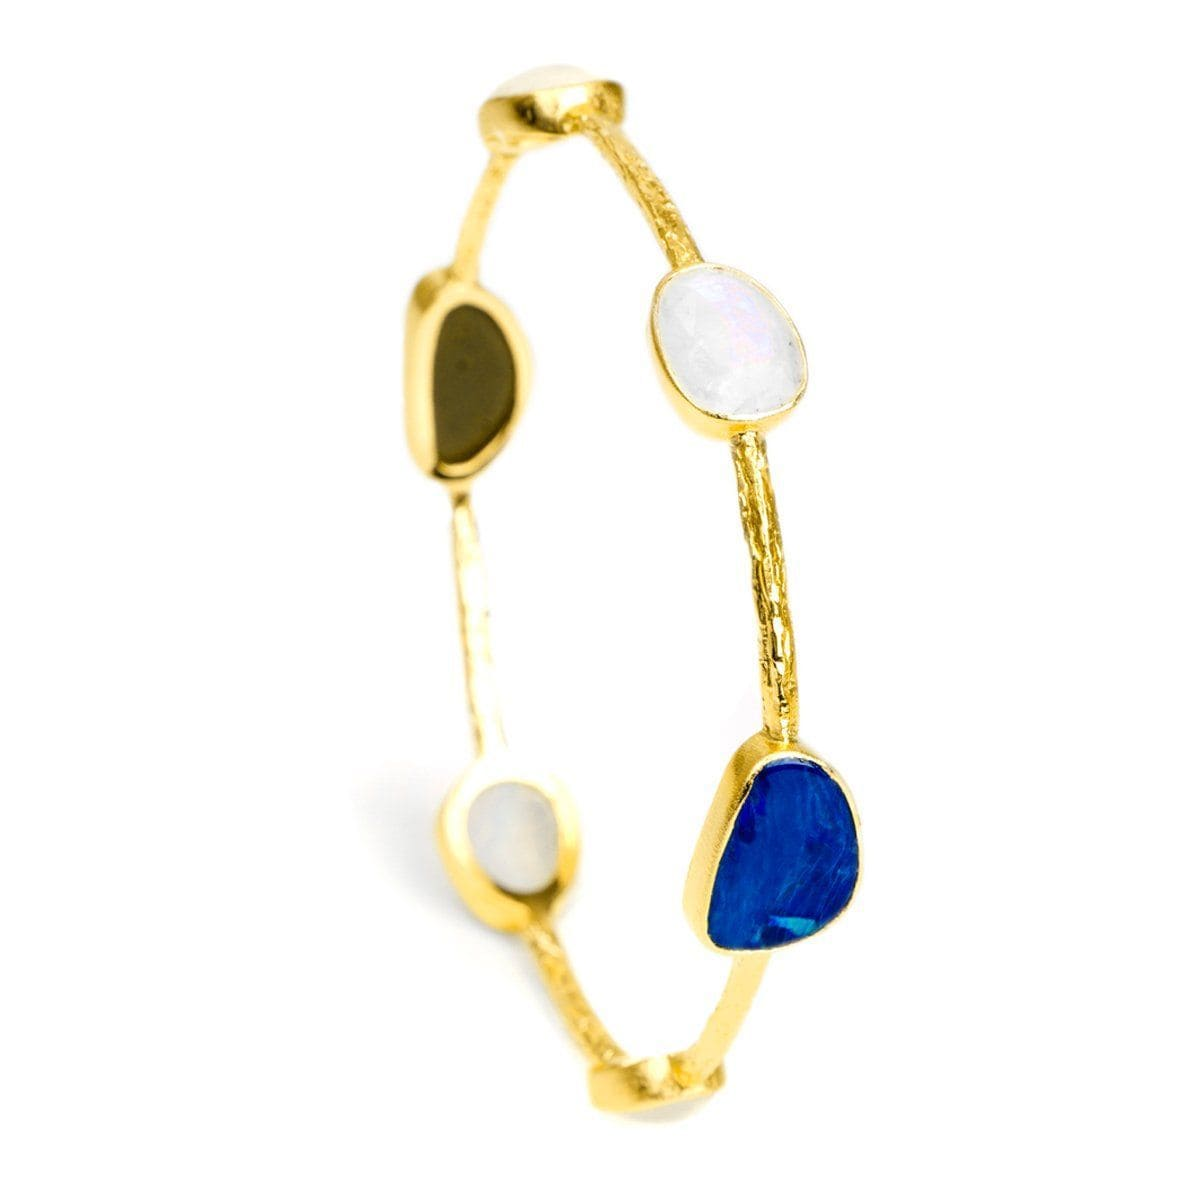 Double Trouble 22k Gold Plated Bangle - G8000B-MIX3-Nina Nguyen-Renee Taylor Gallery